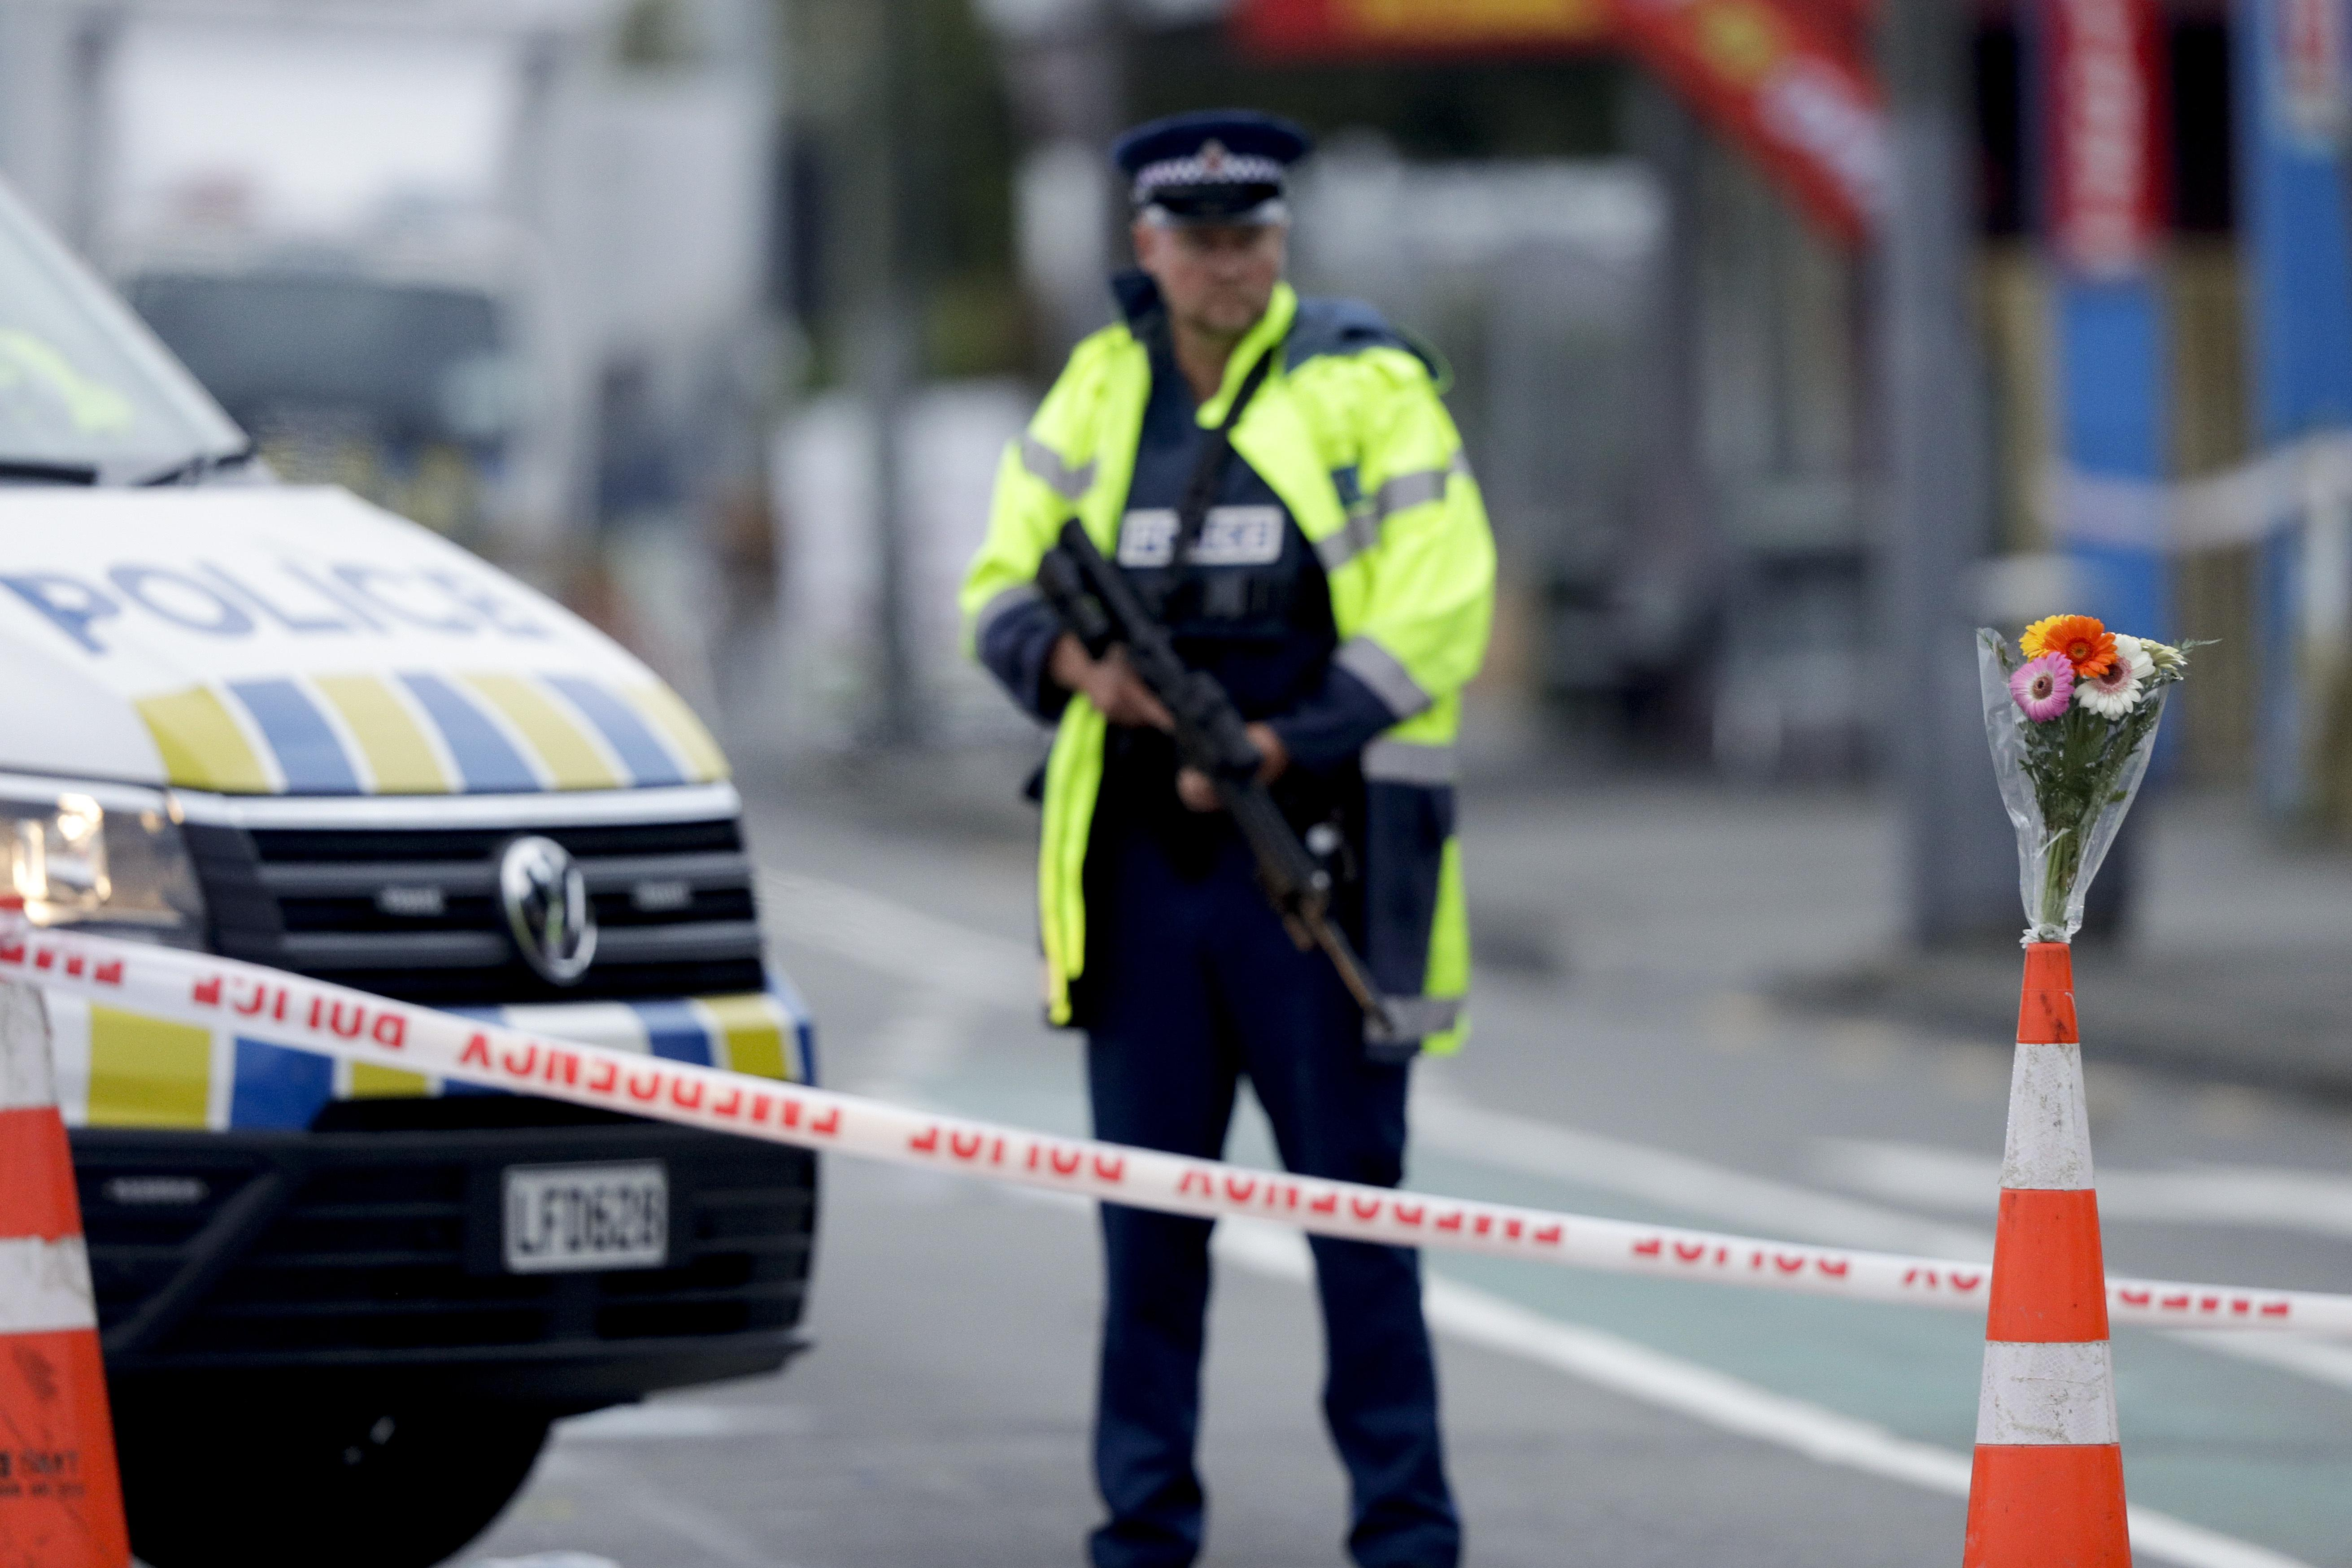 New Zealand Mass Shooting Twitter: At Least 49 People Are Dead In Mass Shootings At Two New